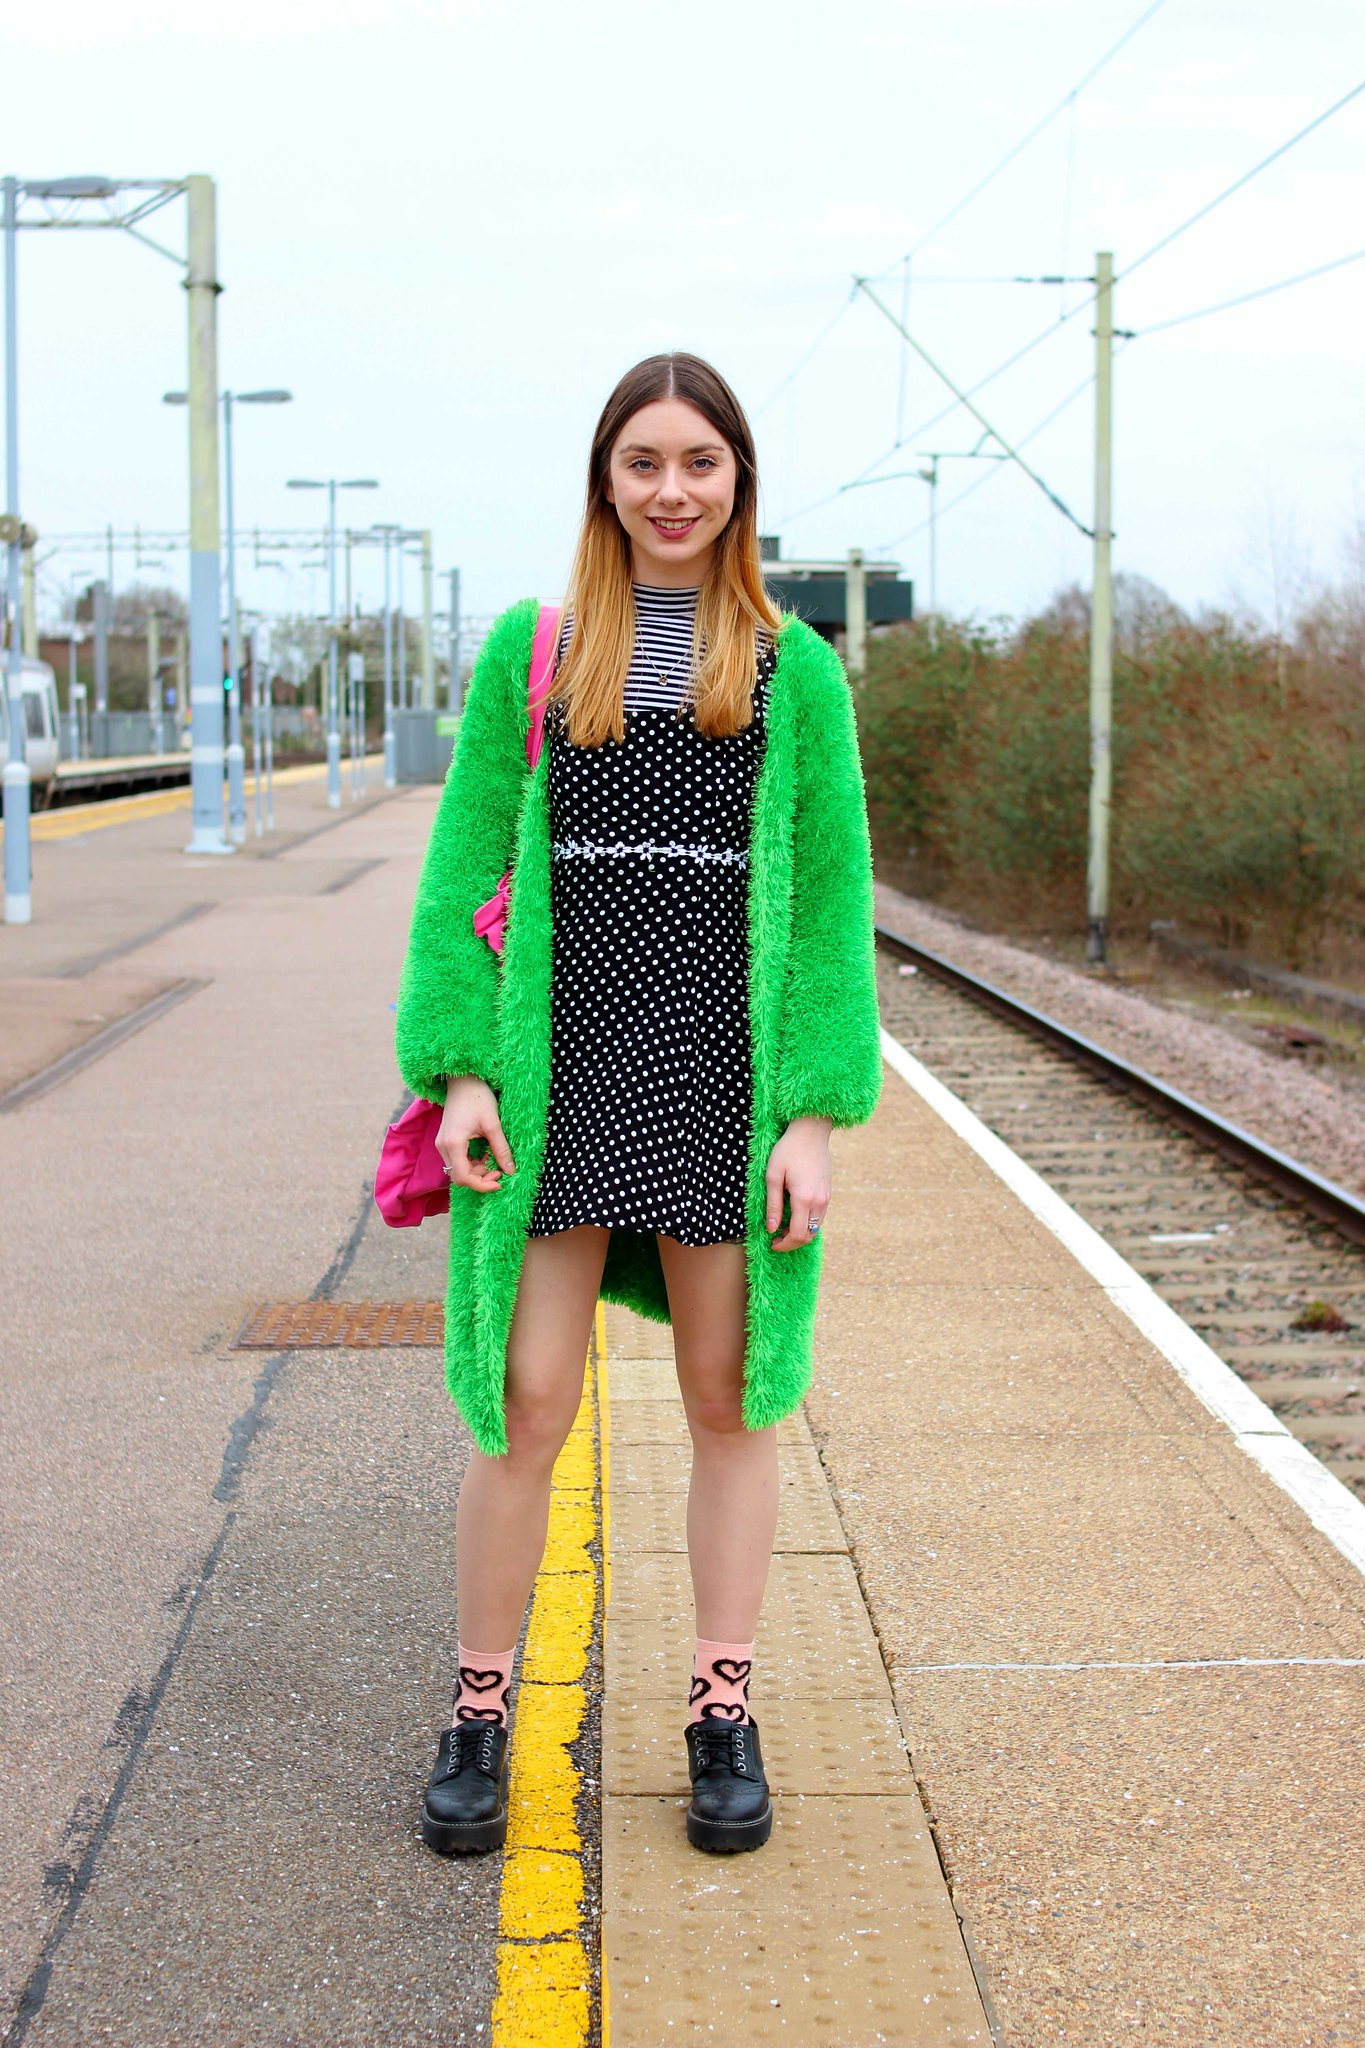 Clashing spots and stripes with a bright green cardigan